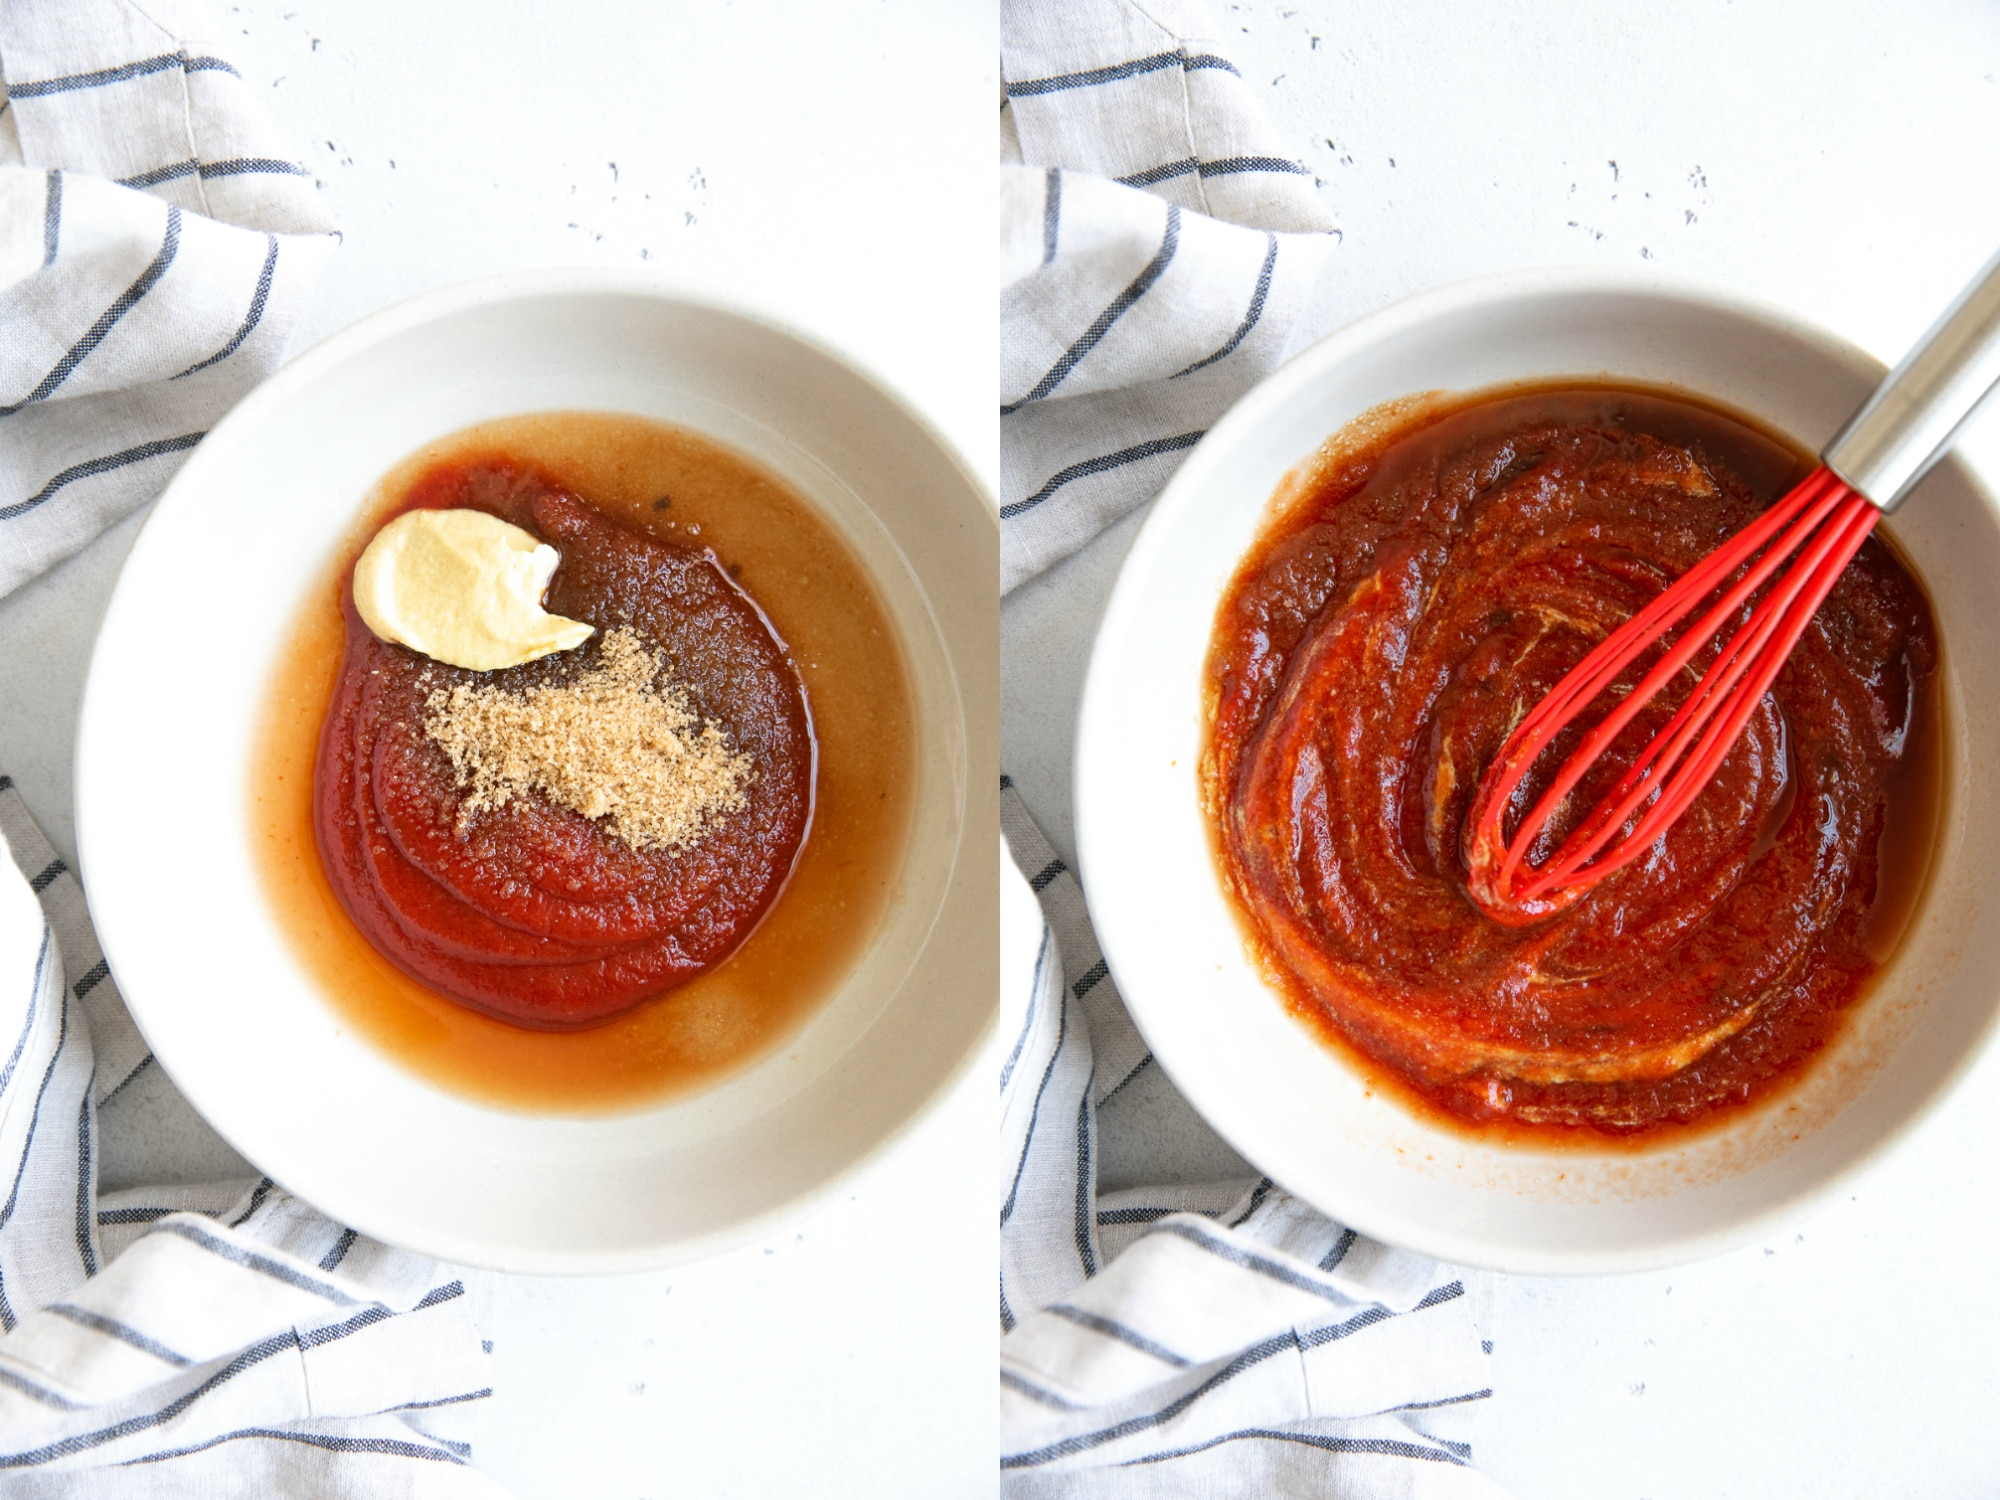 Collage image of ketchup sauce for meatloaf.